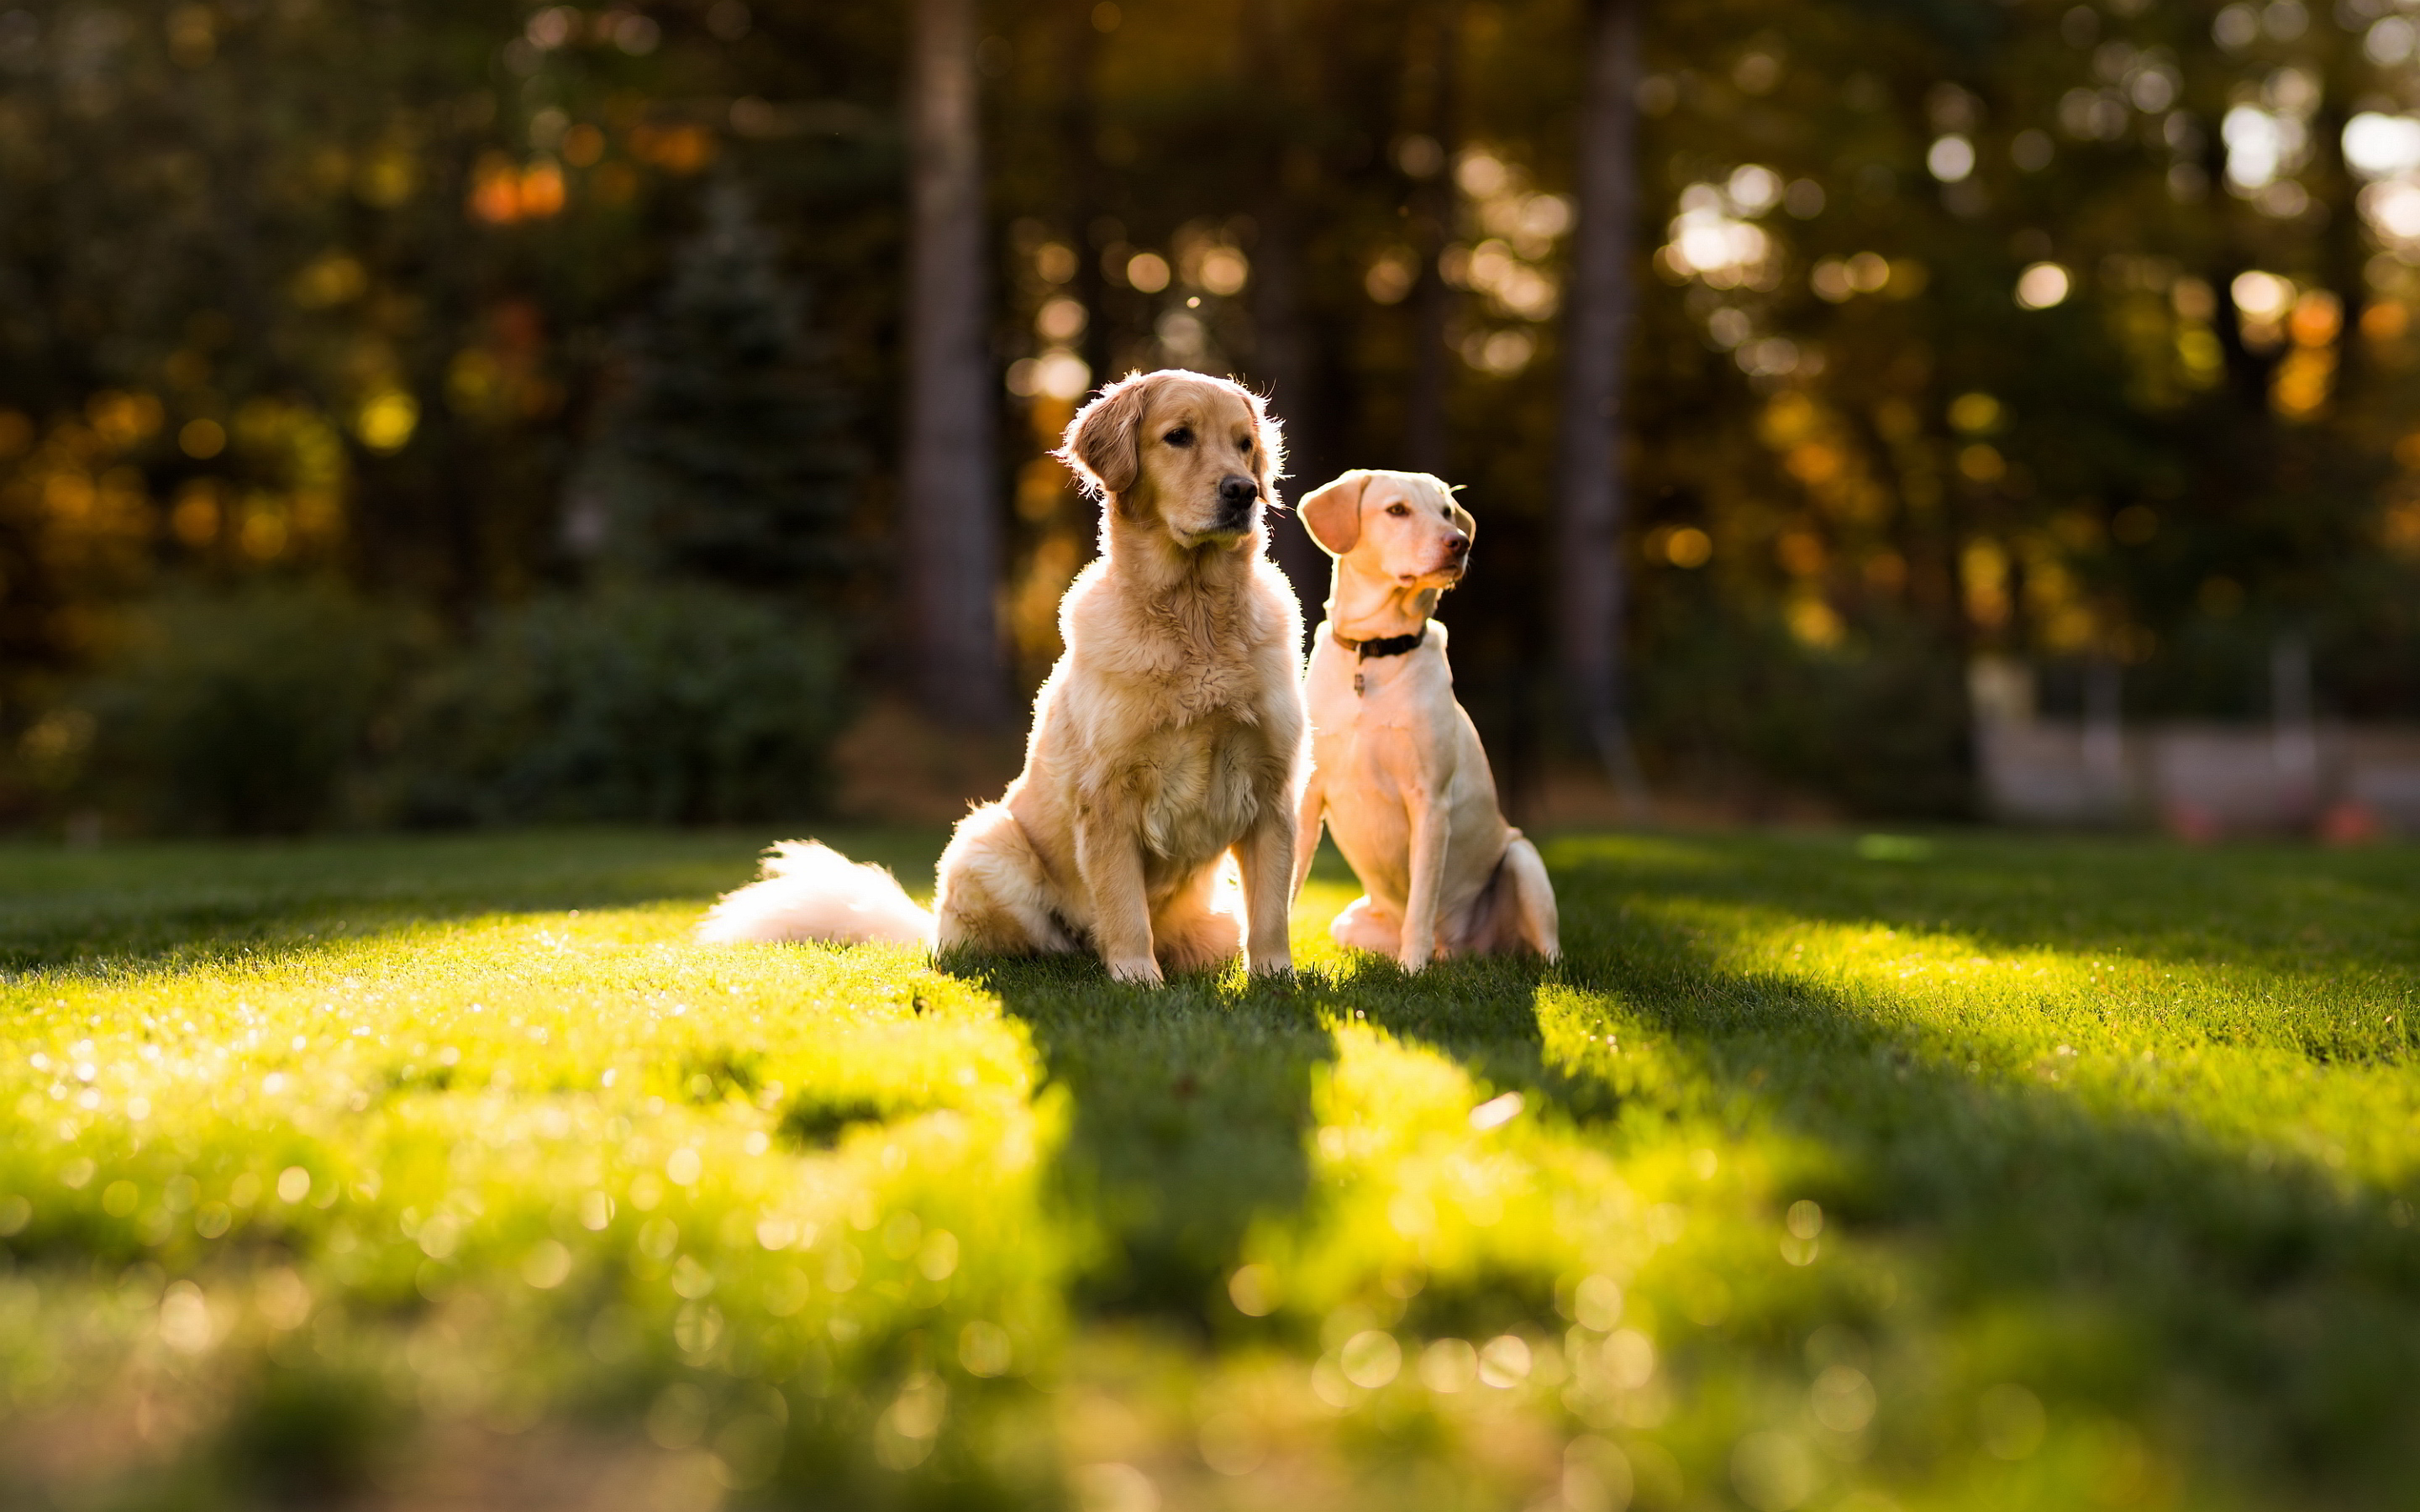 dogs hd wallpapers download - HD Desktop Wallpapers | 4k HD